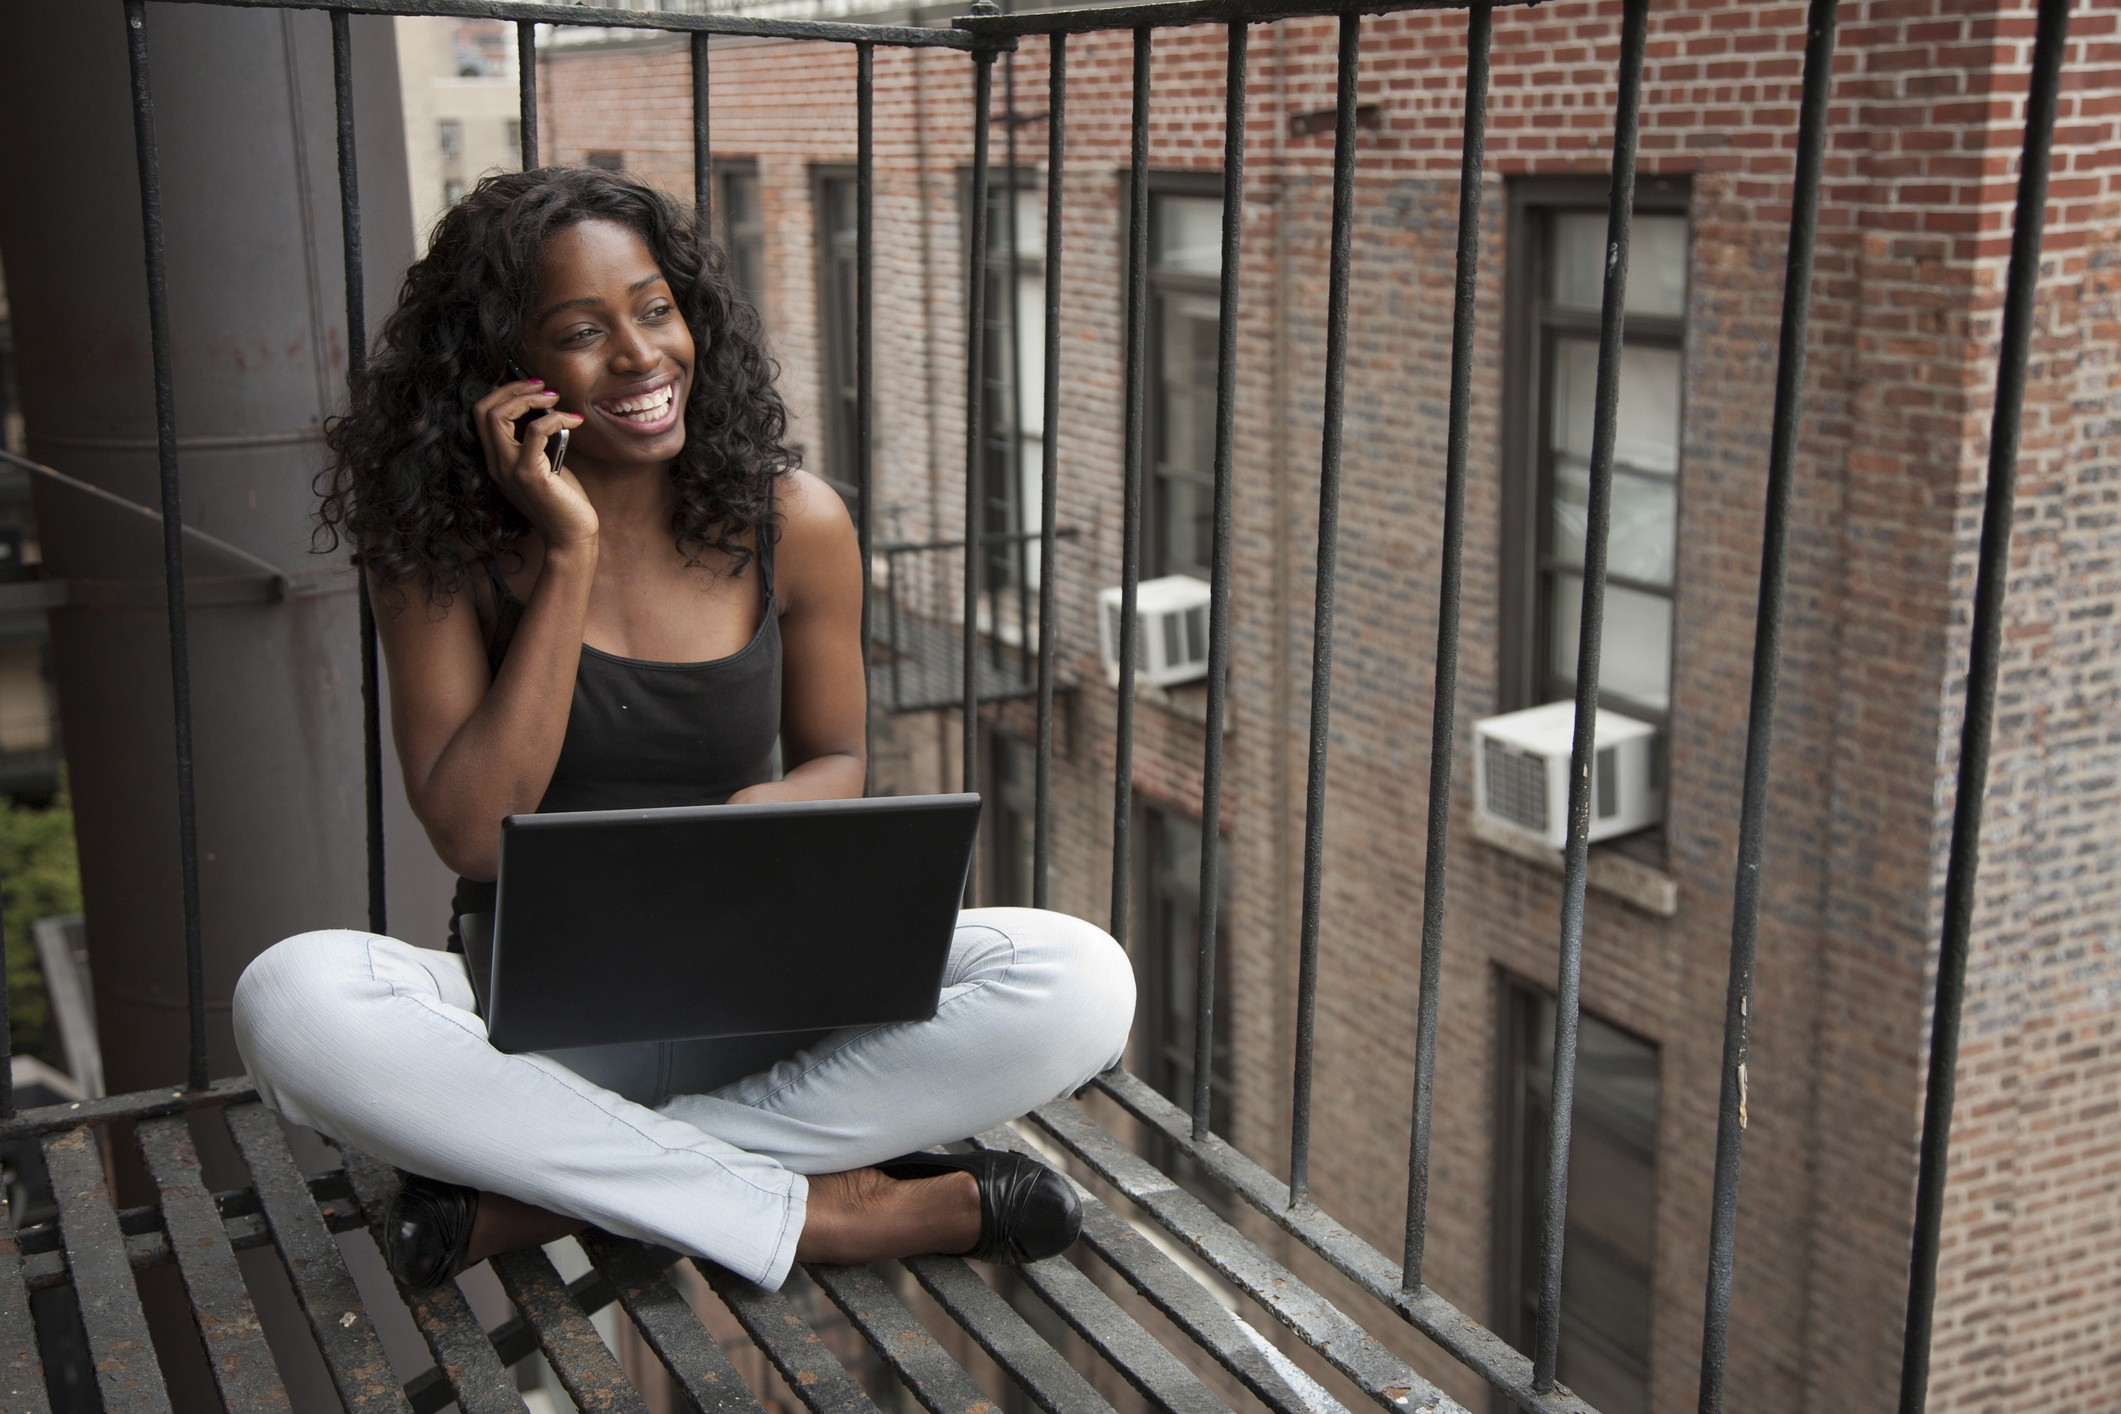 Smiling Black woman sitting on a terrace with her laptop, on a phone call.